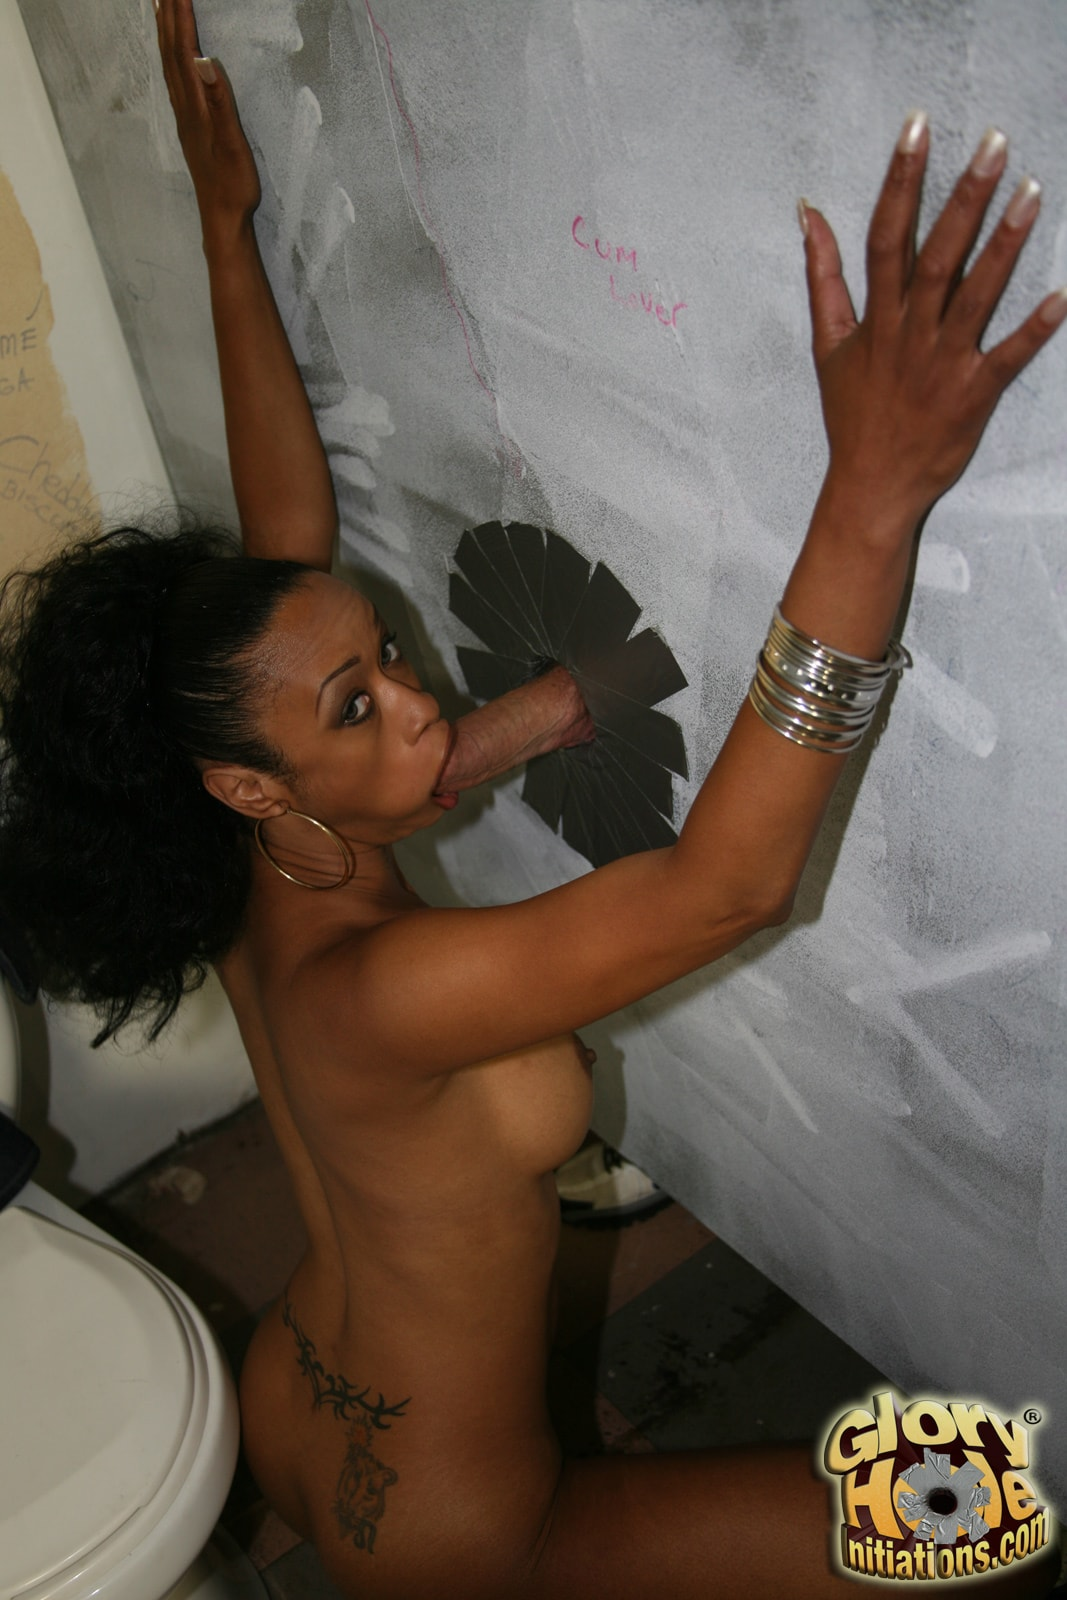 Dogfart 'Stacey Dollar - Glory Hole Initiations' starring Stacey Dollar (photo 26)